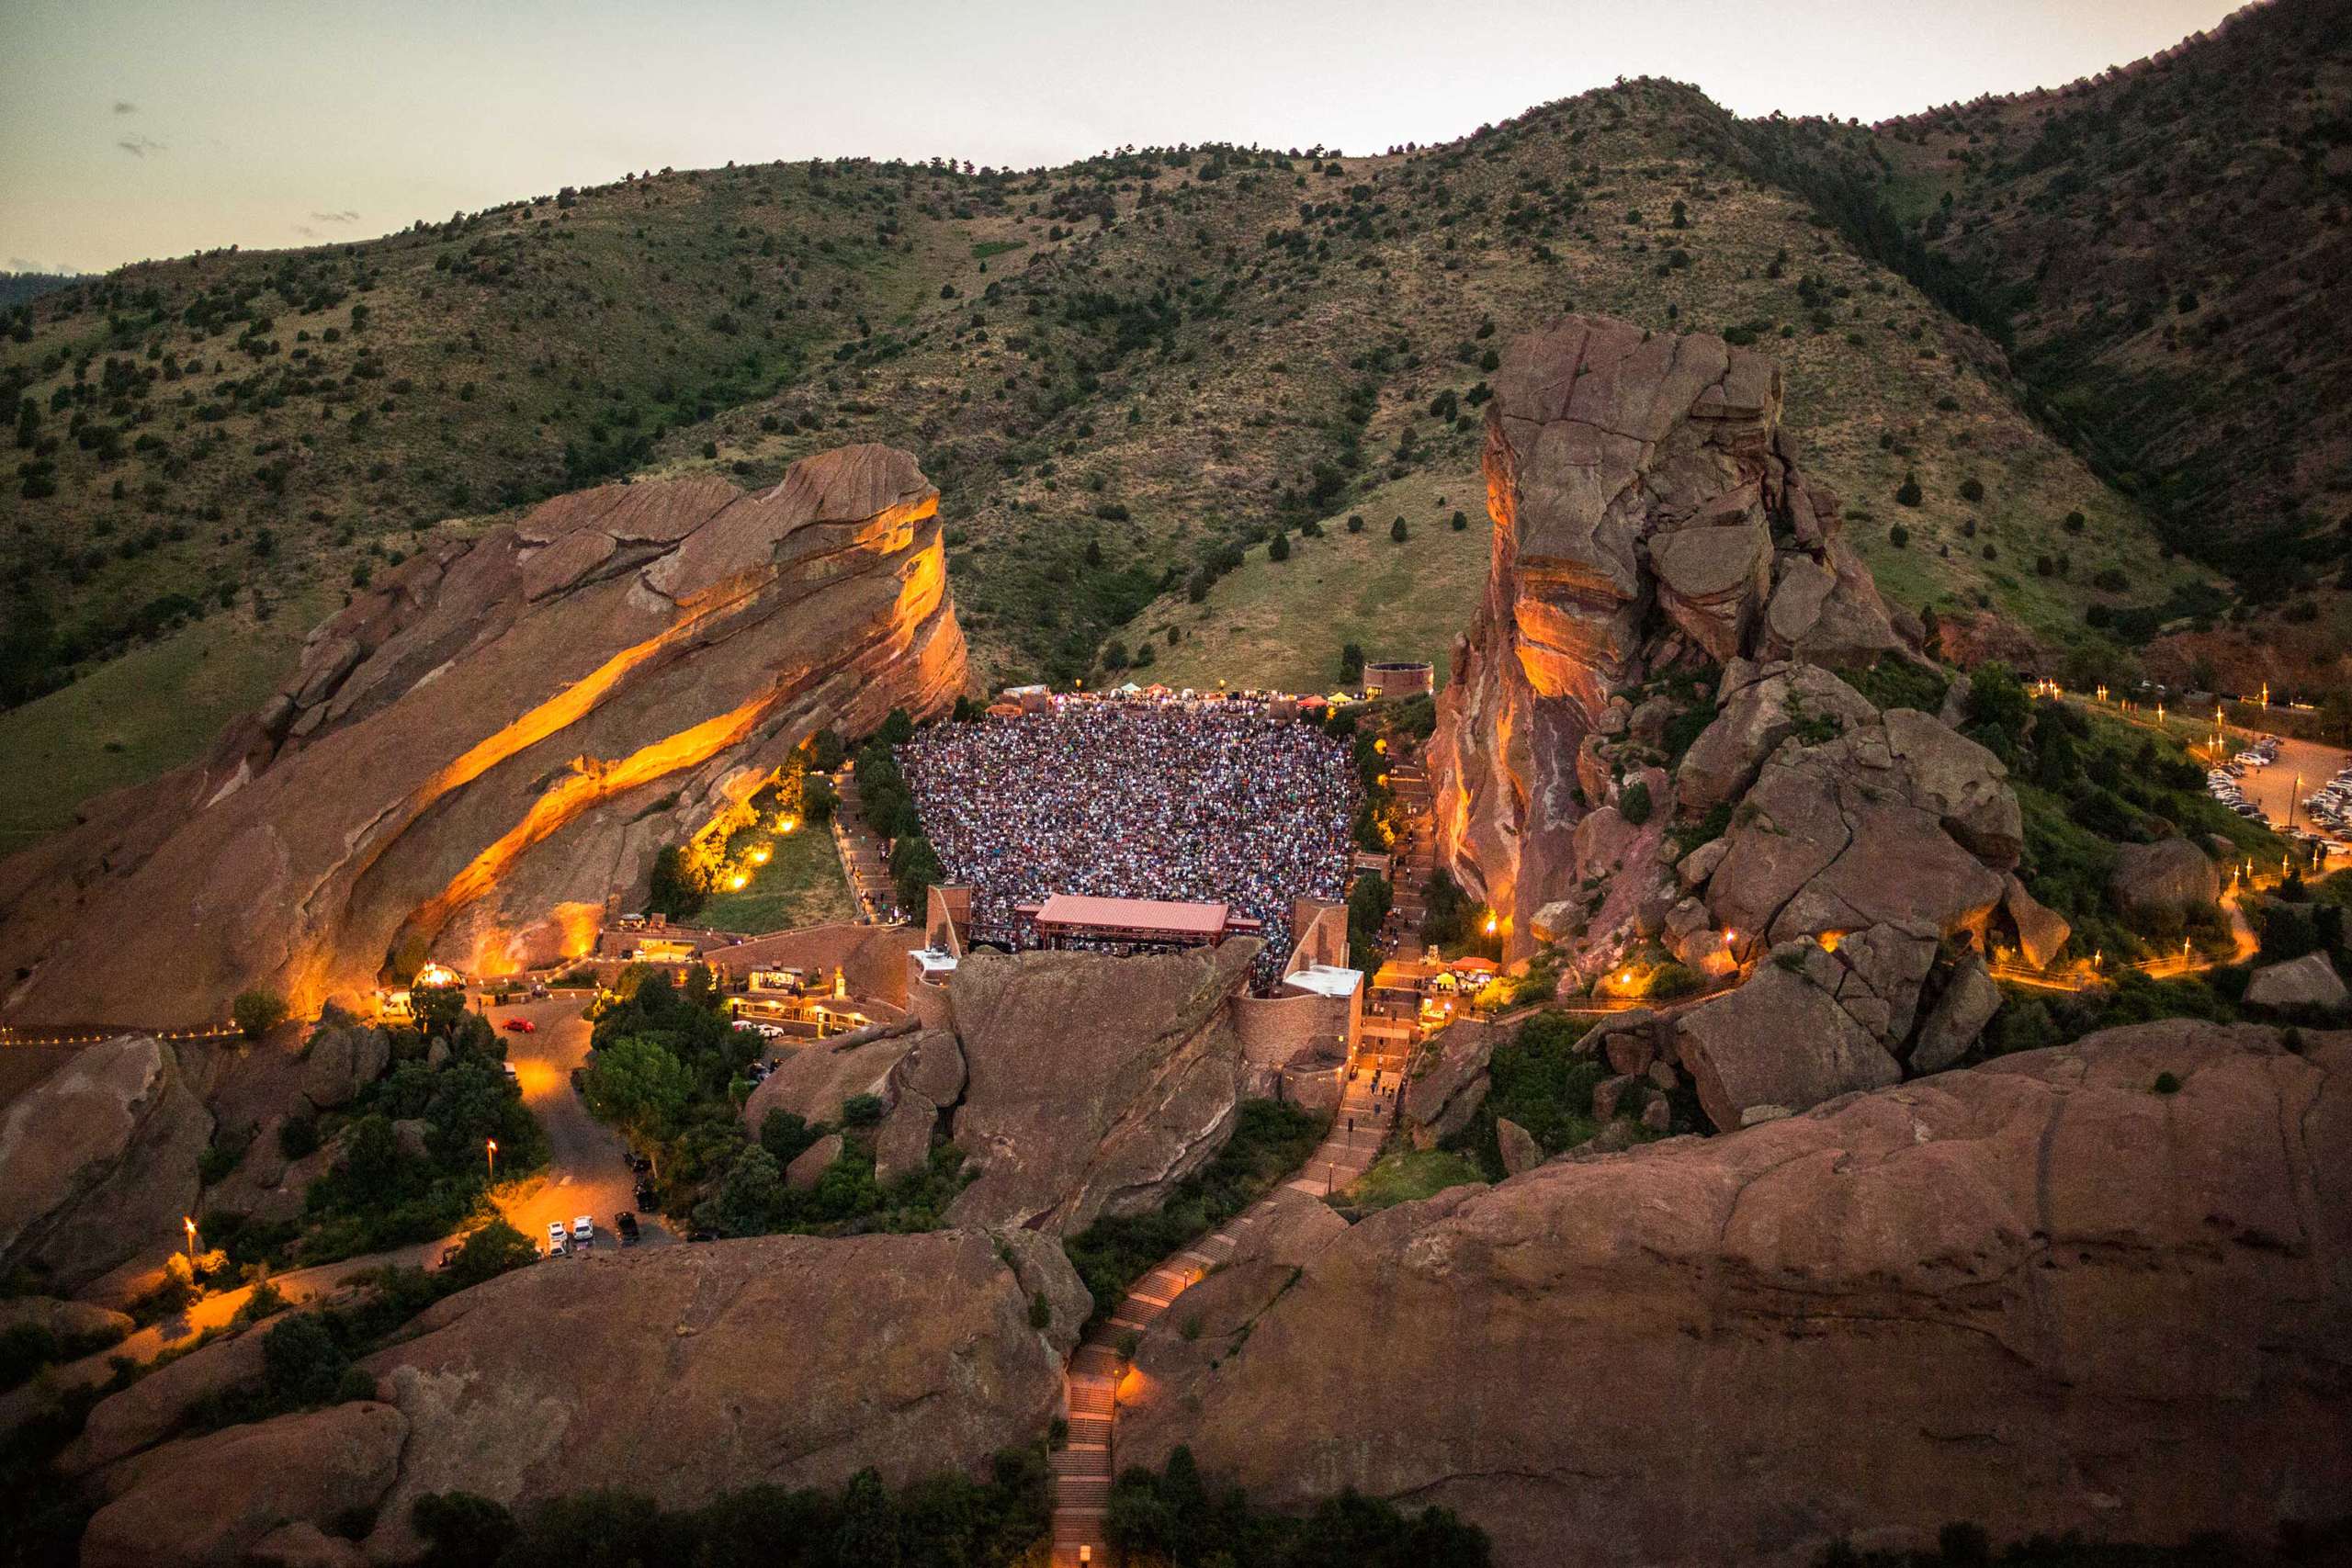 Red Rocks Amphitheatre in Morrison, CO photographed June 19, 2016 during a                                Bob Dylan and Mavis Staples Concert. It is celbrating it's 75th Anniversary this year.